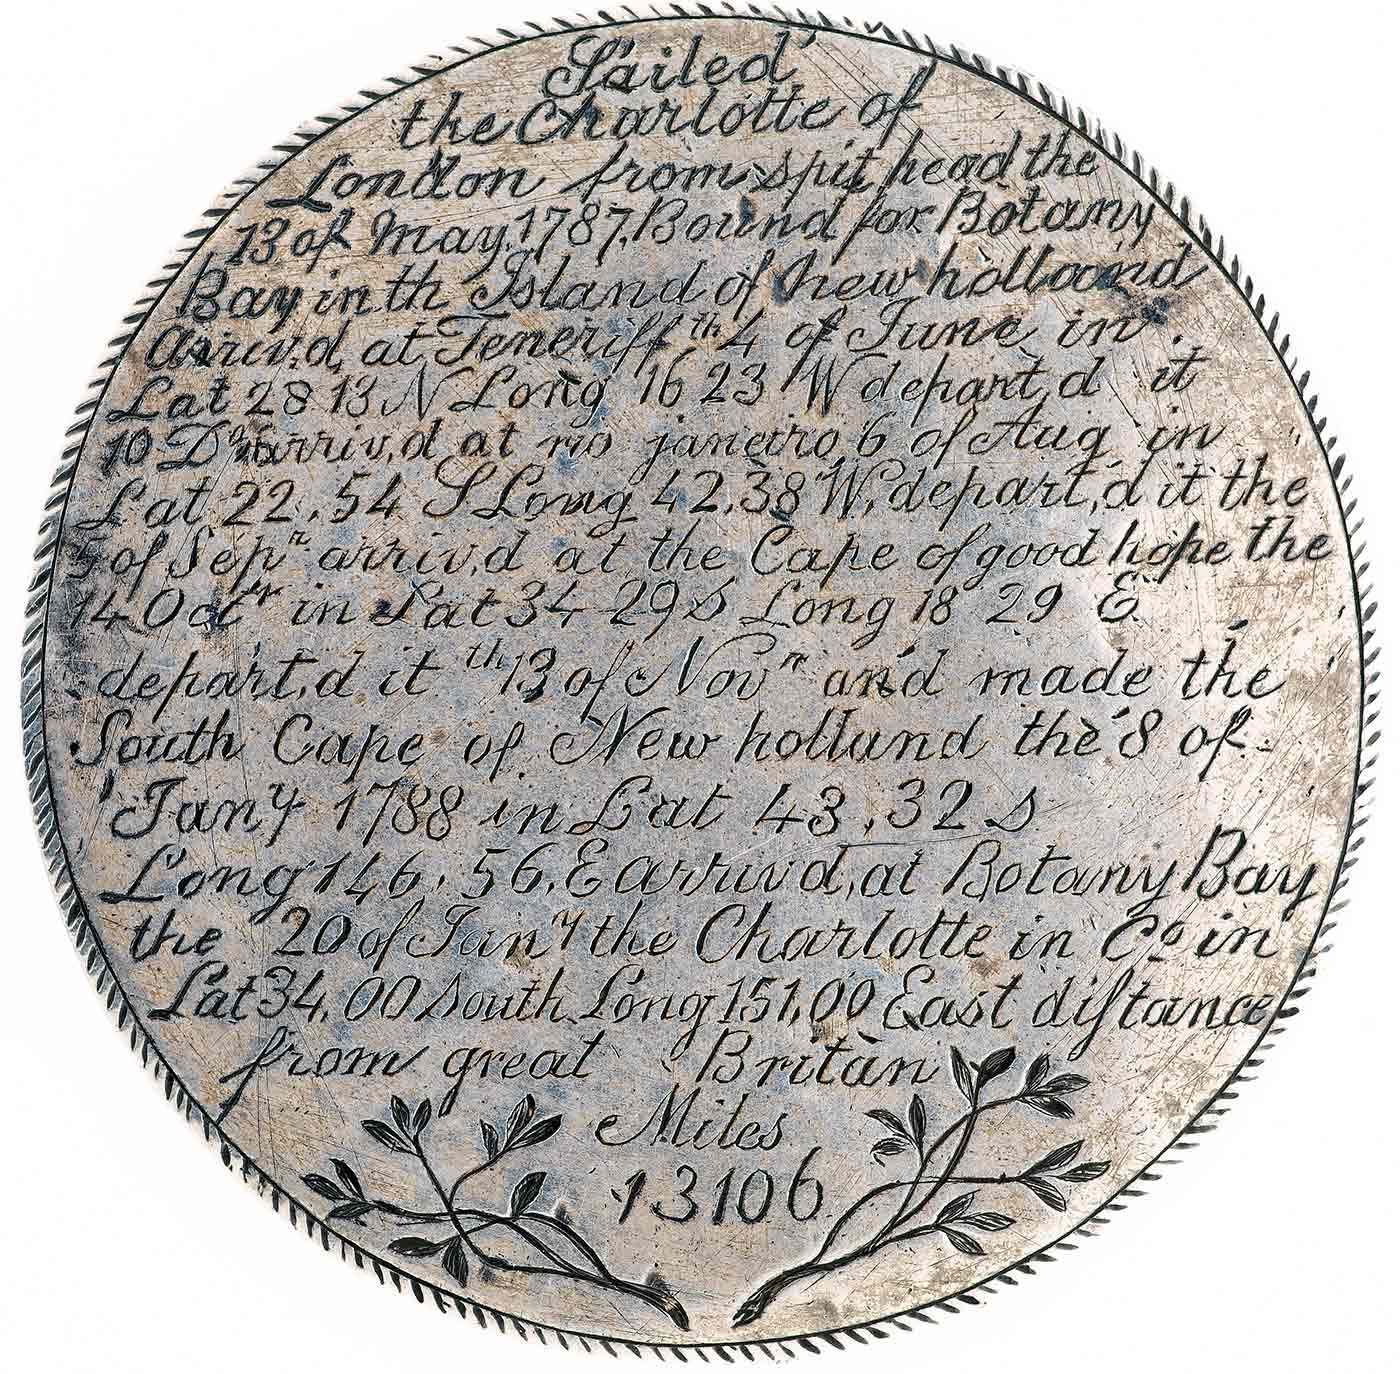 Back view of a silver medal with inscription of text and branches. - click to view larger image